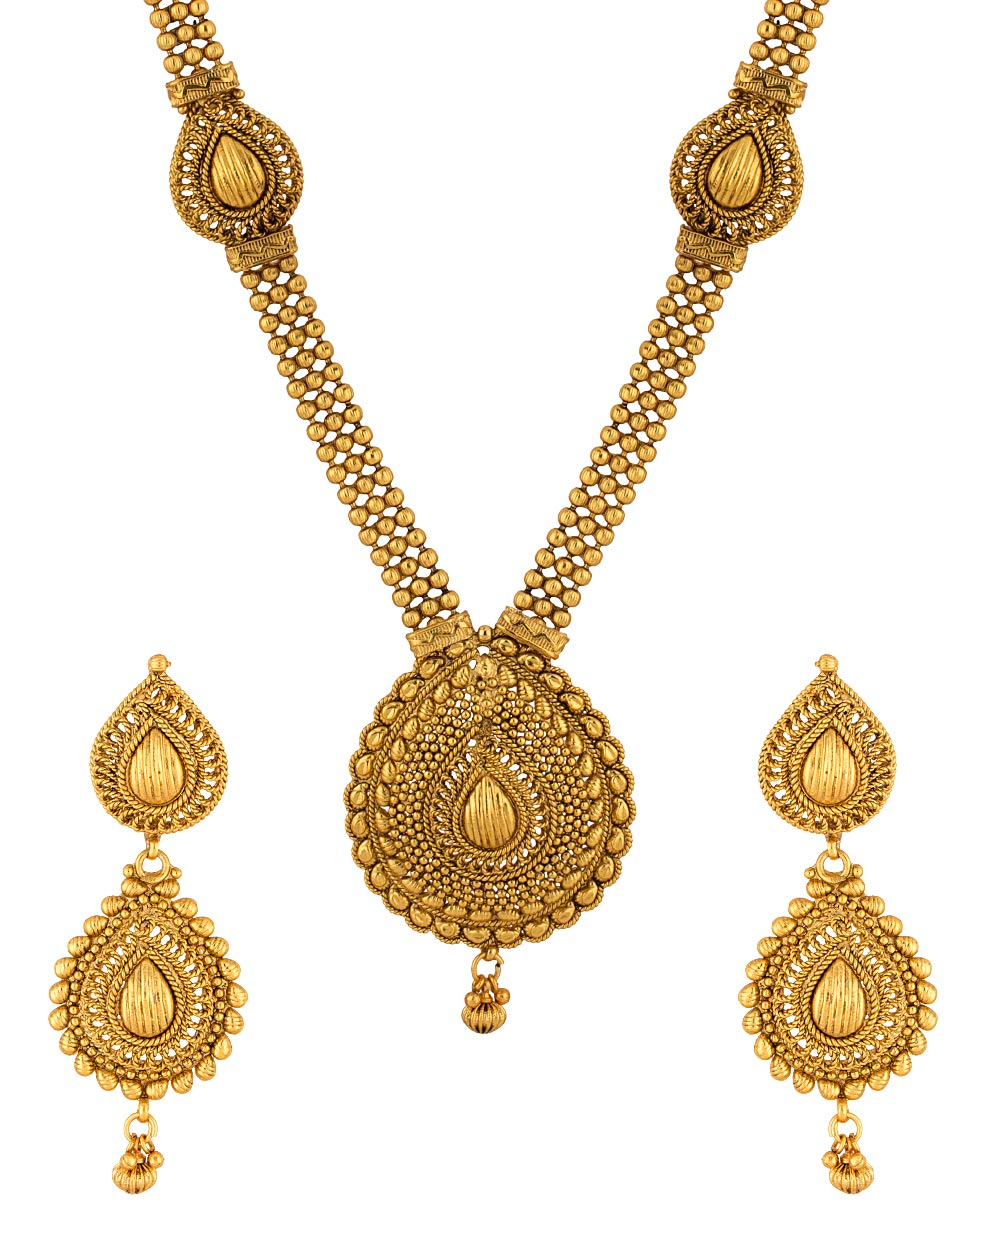 Buy Golden Traditional Long Necklace Set Online India | Voylla